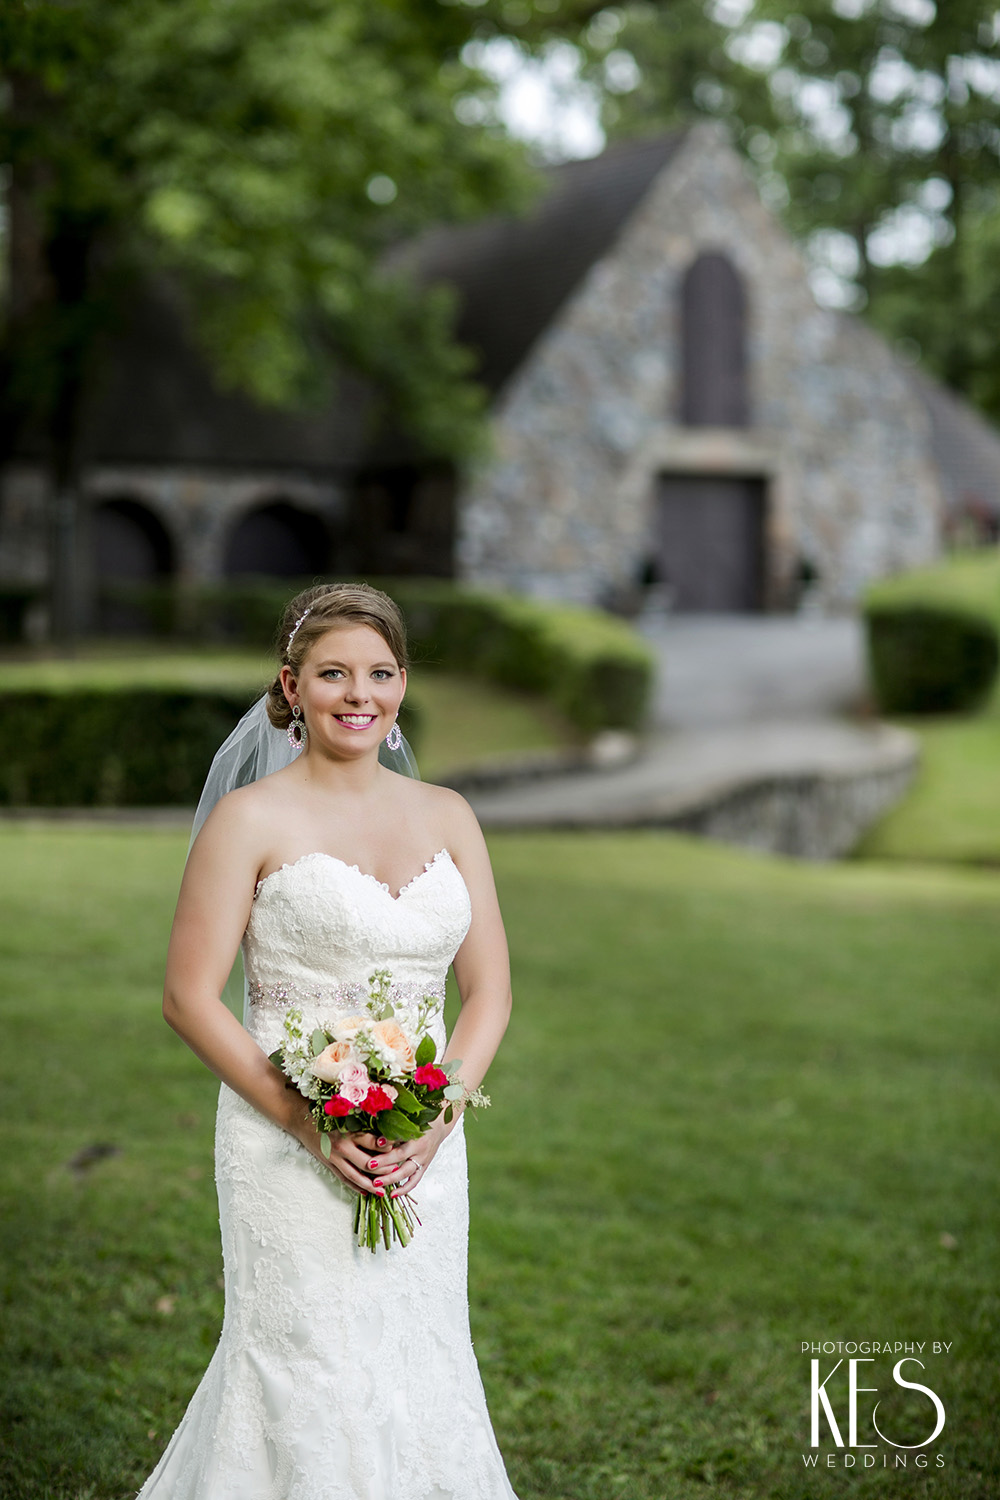 Daisy_Bridals_Castle_at_Stagecoach_12.JPG